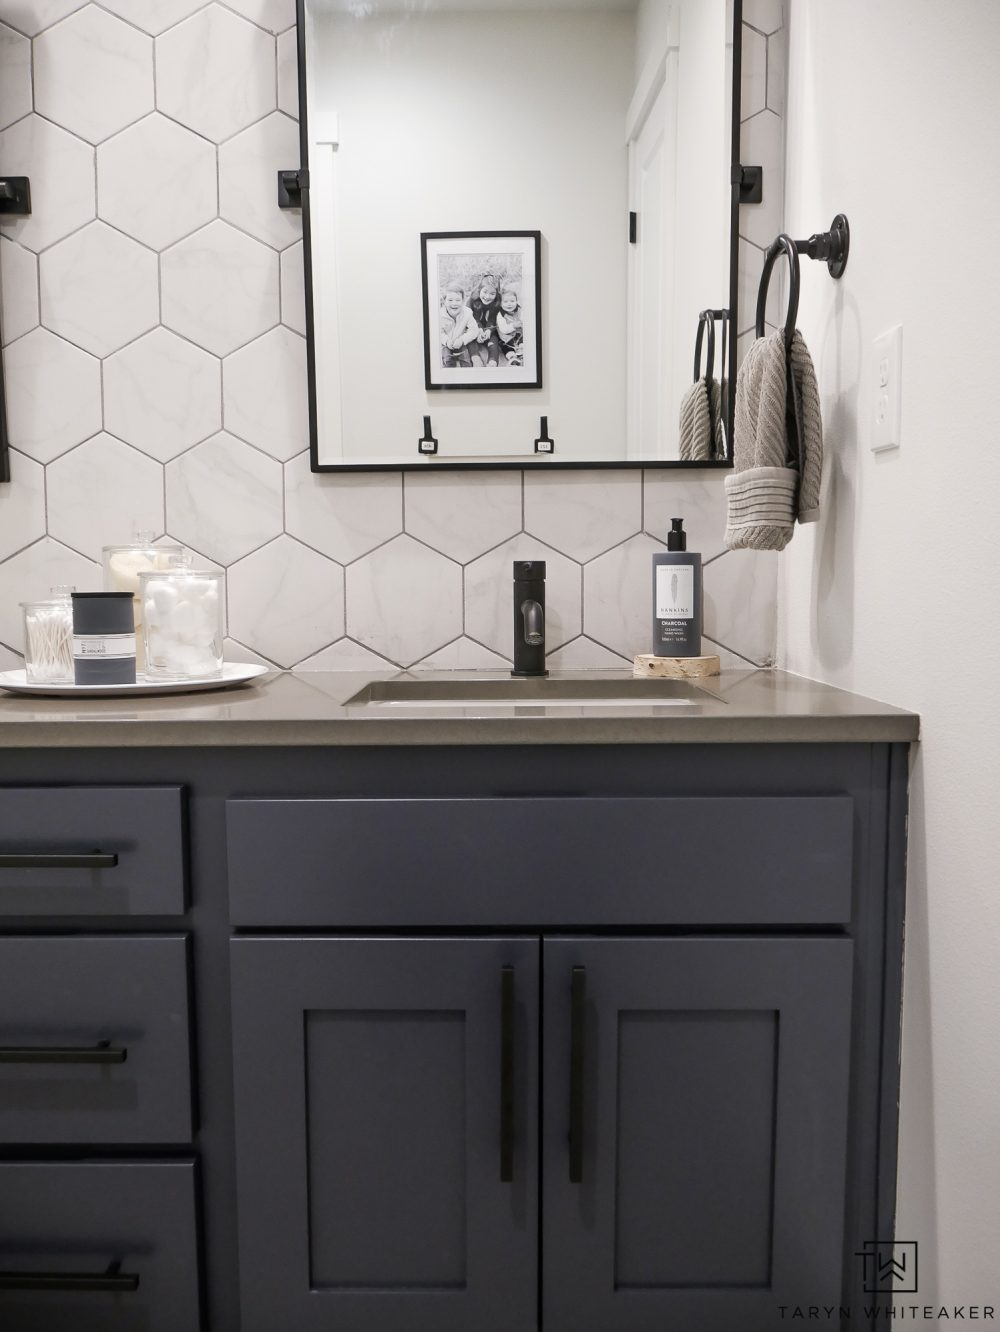 Check out this jack-n-jill bathroom makeover with a rustic modern look! The marble looking hexagon tile makes a huge impact with industrial fixtures.